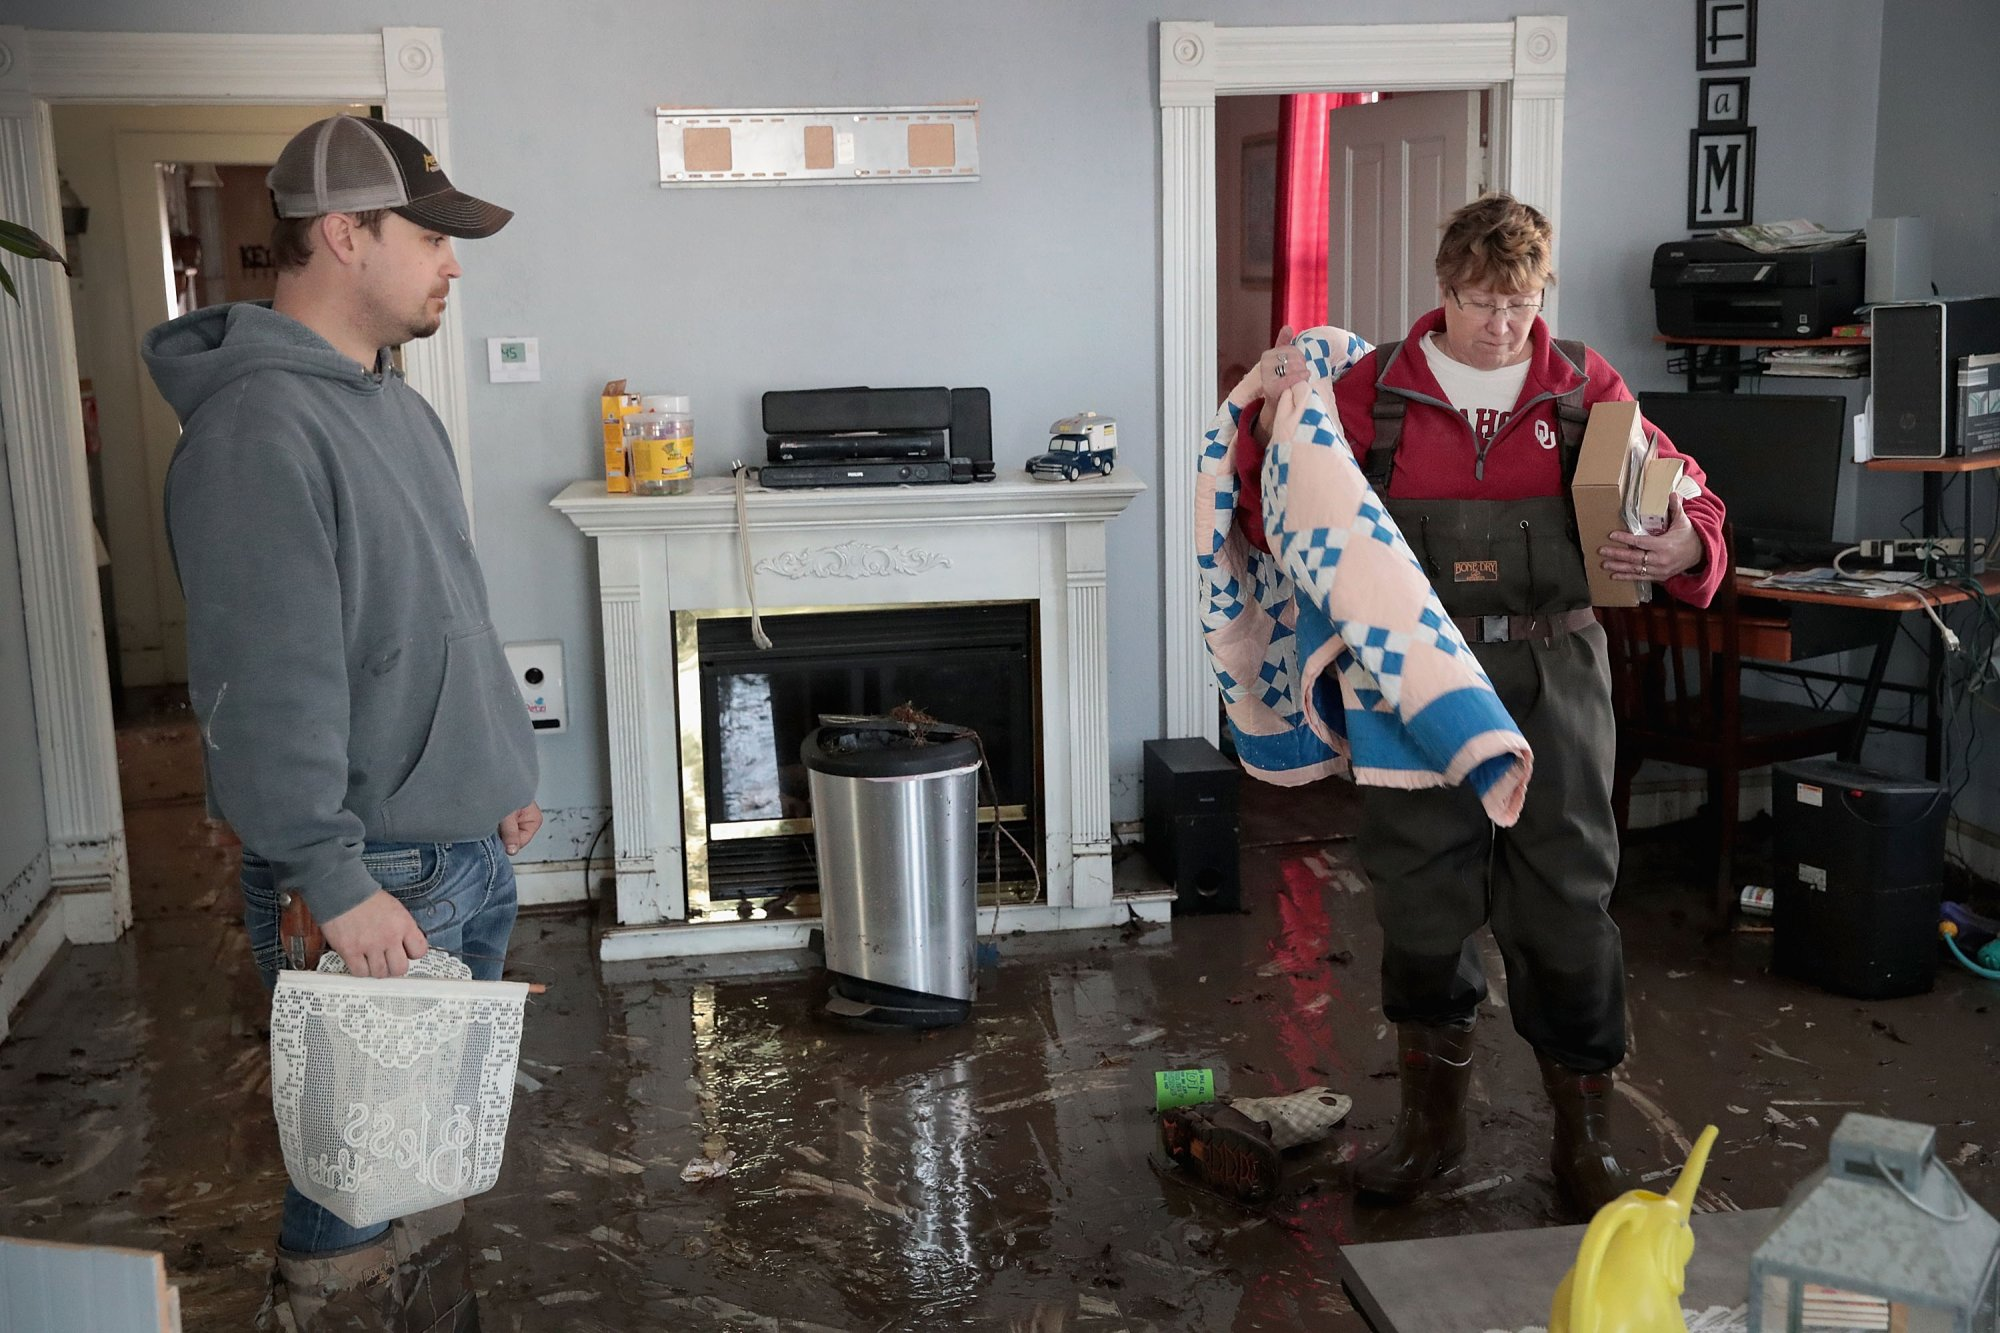 "HAMBURG, IOWA - MARCH 20:  Joey Peeler (L) helps his friend Kathy Drummond remove items from her flooded home on March 20, 2019 in Hamburg, Iowa. Although flood water in the town has started to recede many homes and businesses remain surrounded by water. Several Midwest states are battling some of the worst flooding they have experienced in decades as rain and snow melt from the recent ""bomb cyclone"" has inundated rivers and streams. At least three deaths have been linked to the flooding.  (Photo by Scott Olson/Getty Images)"